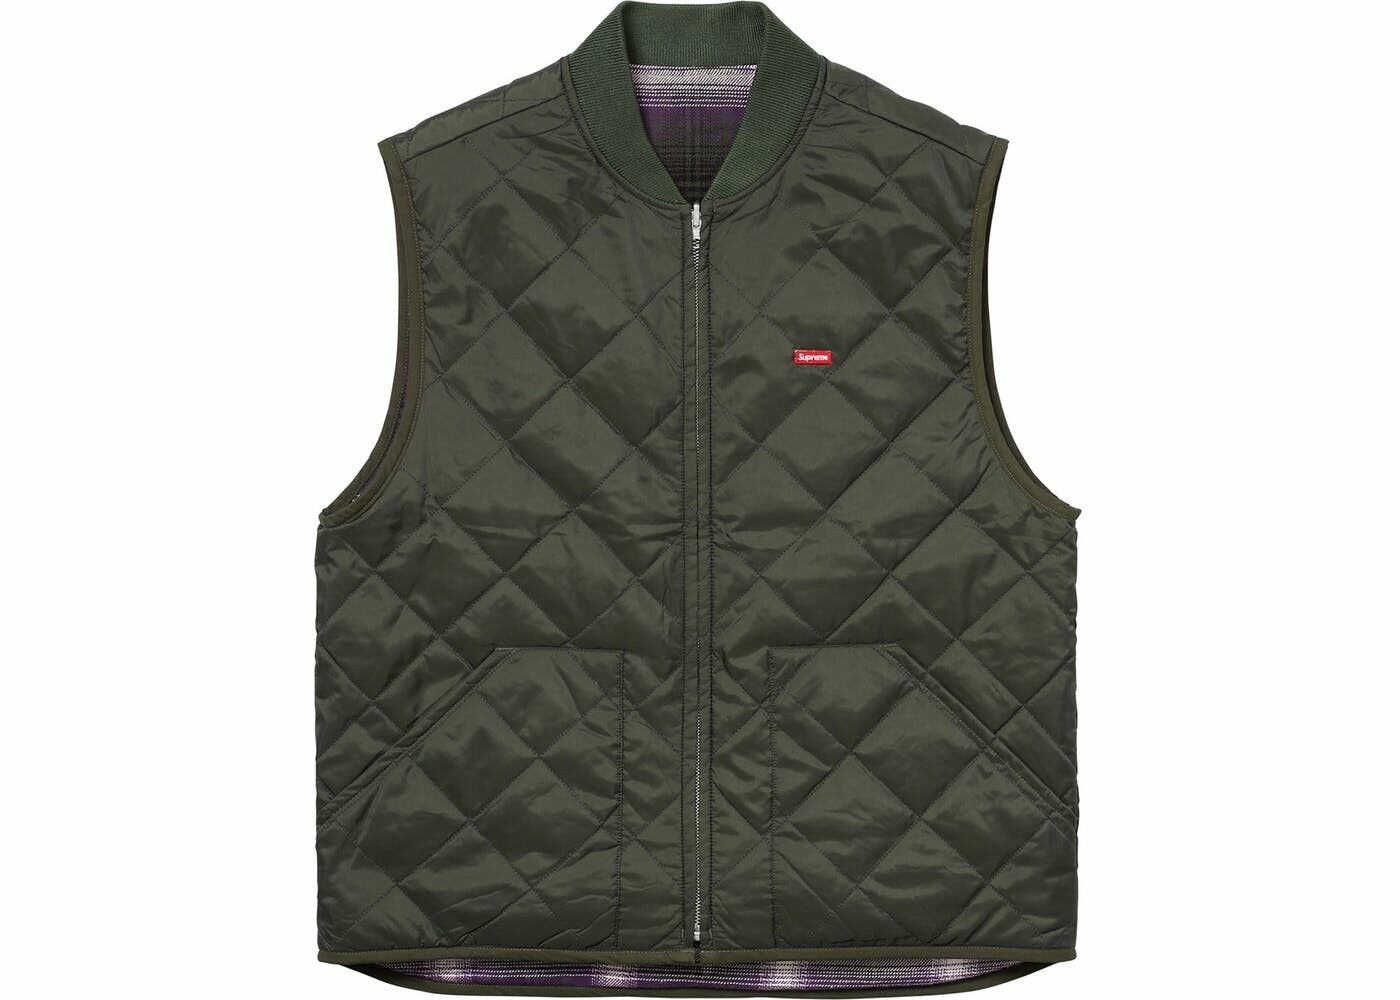 FW17 Supreme Reversible Shadow Plaid Vest Dark Green Size Medium DSWT